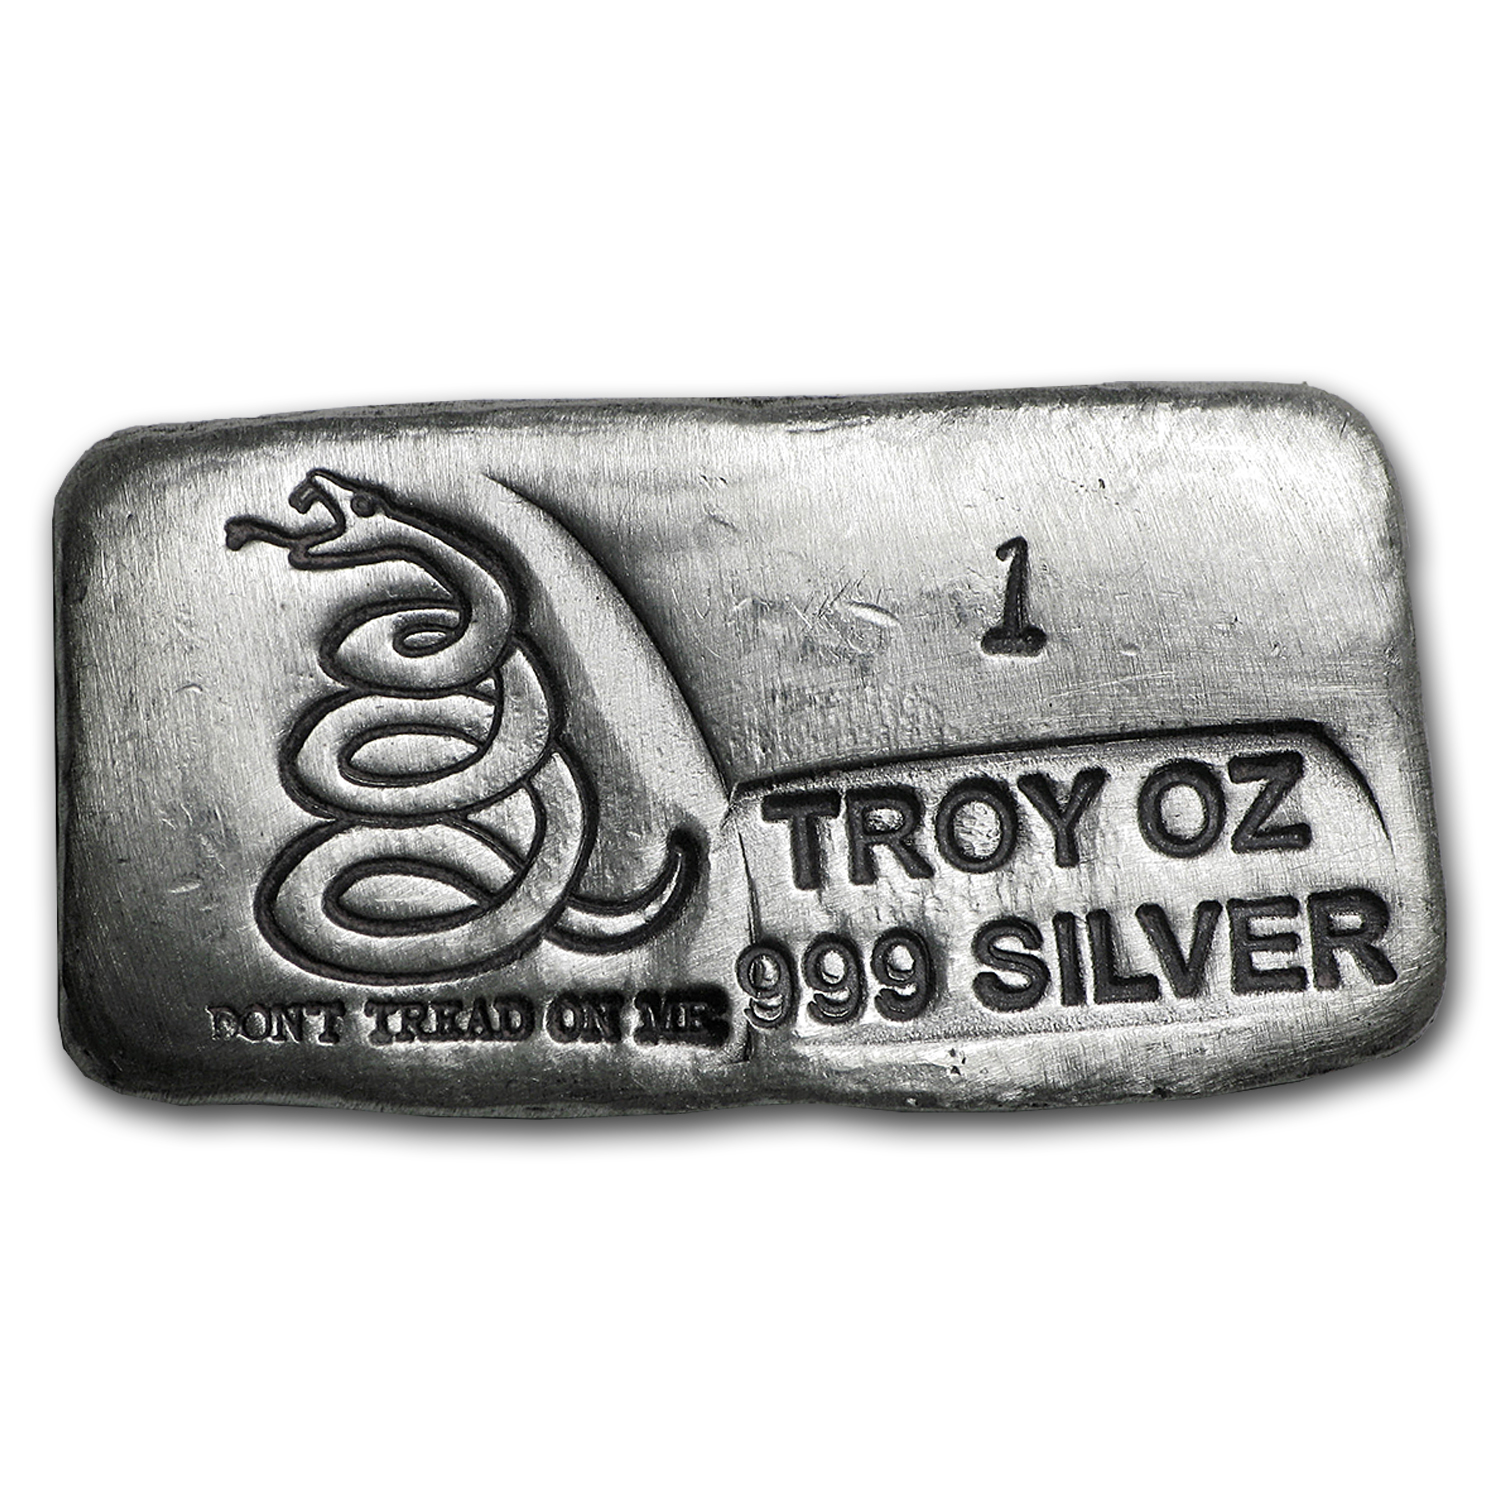 1 oz Silver Bar - Don't Tread On Me (PG&G)